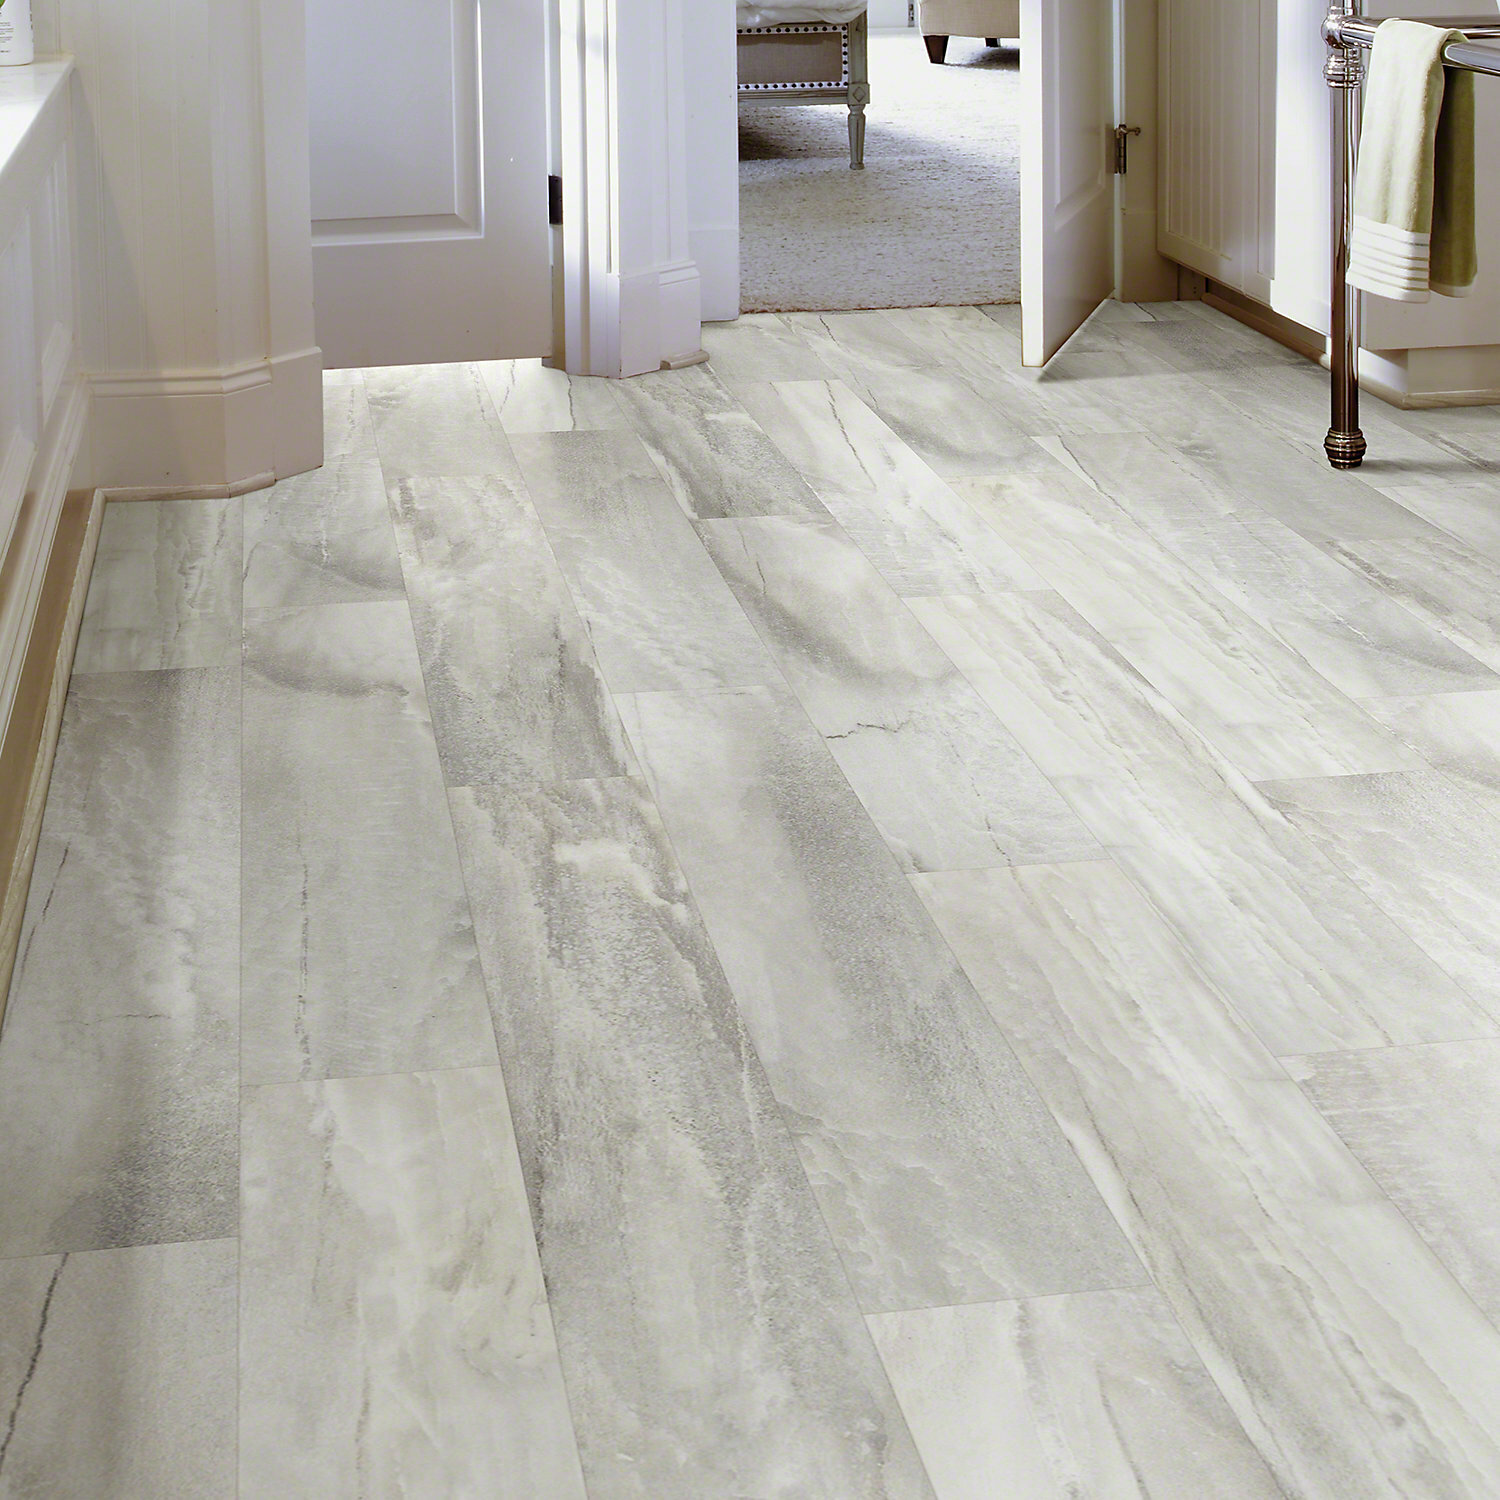 Shaw Floors Elemental Supreme 6 X 36 4mm Luxury Vinyl Plank Reviews Wayfair